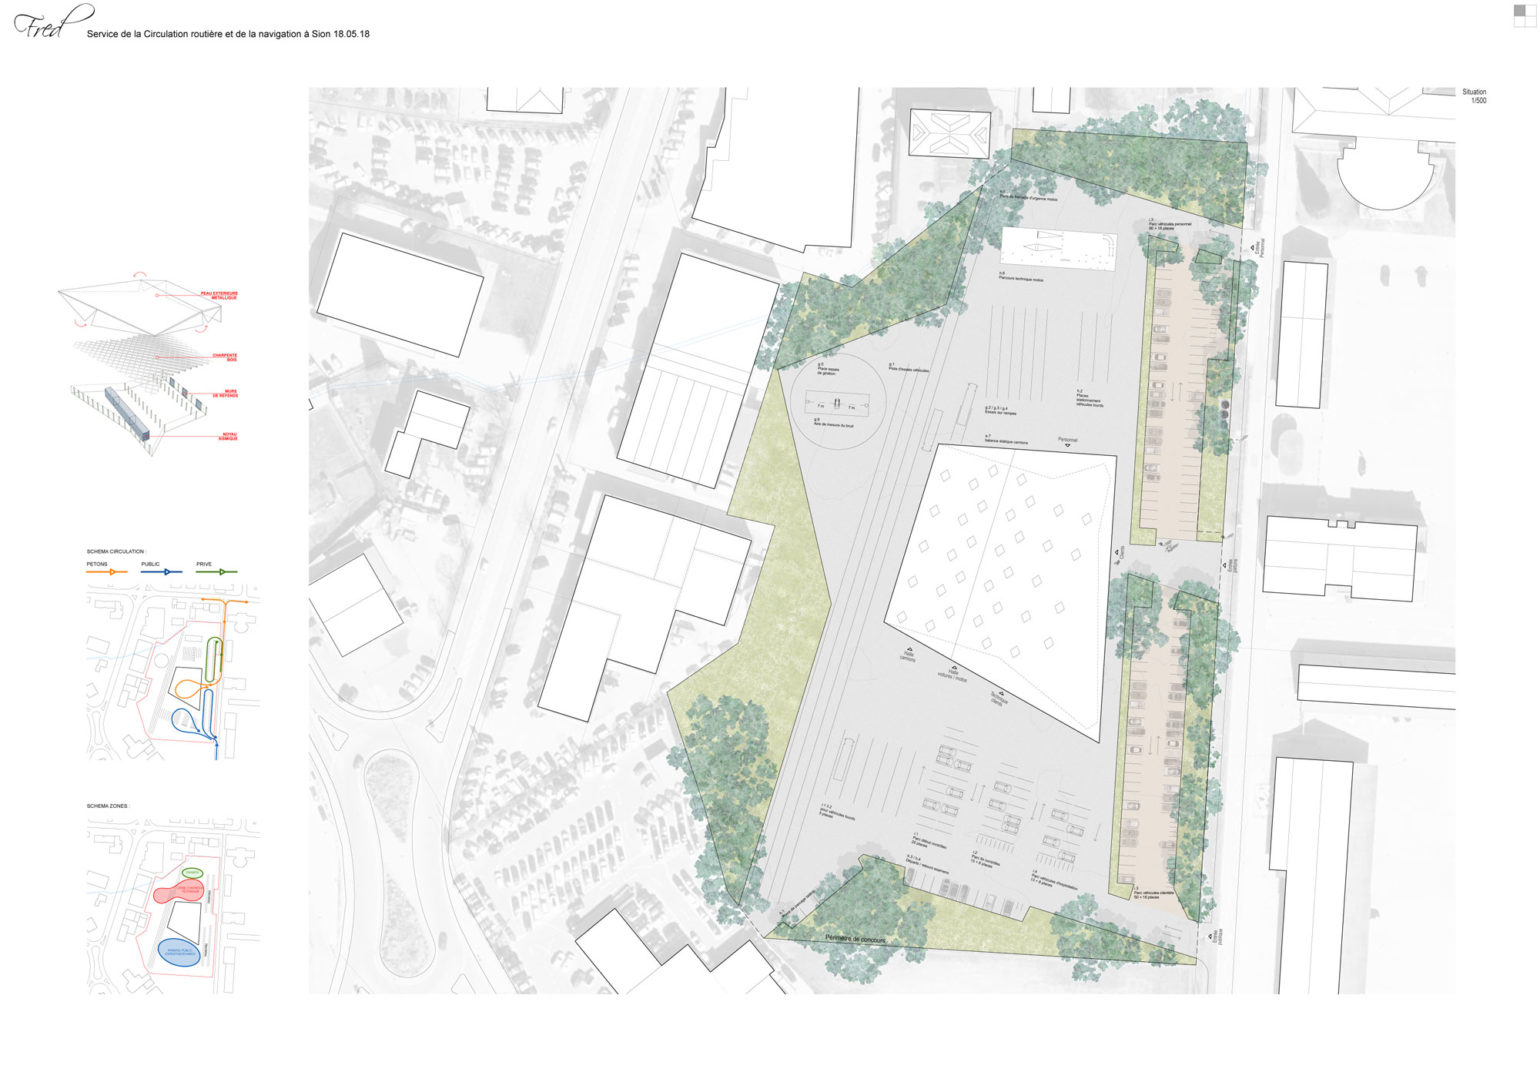 concours_service_circulation_sion_meyer_architecture_sion_03